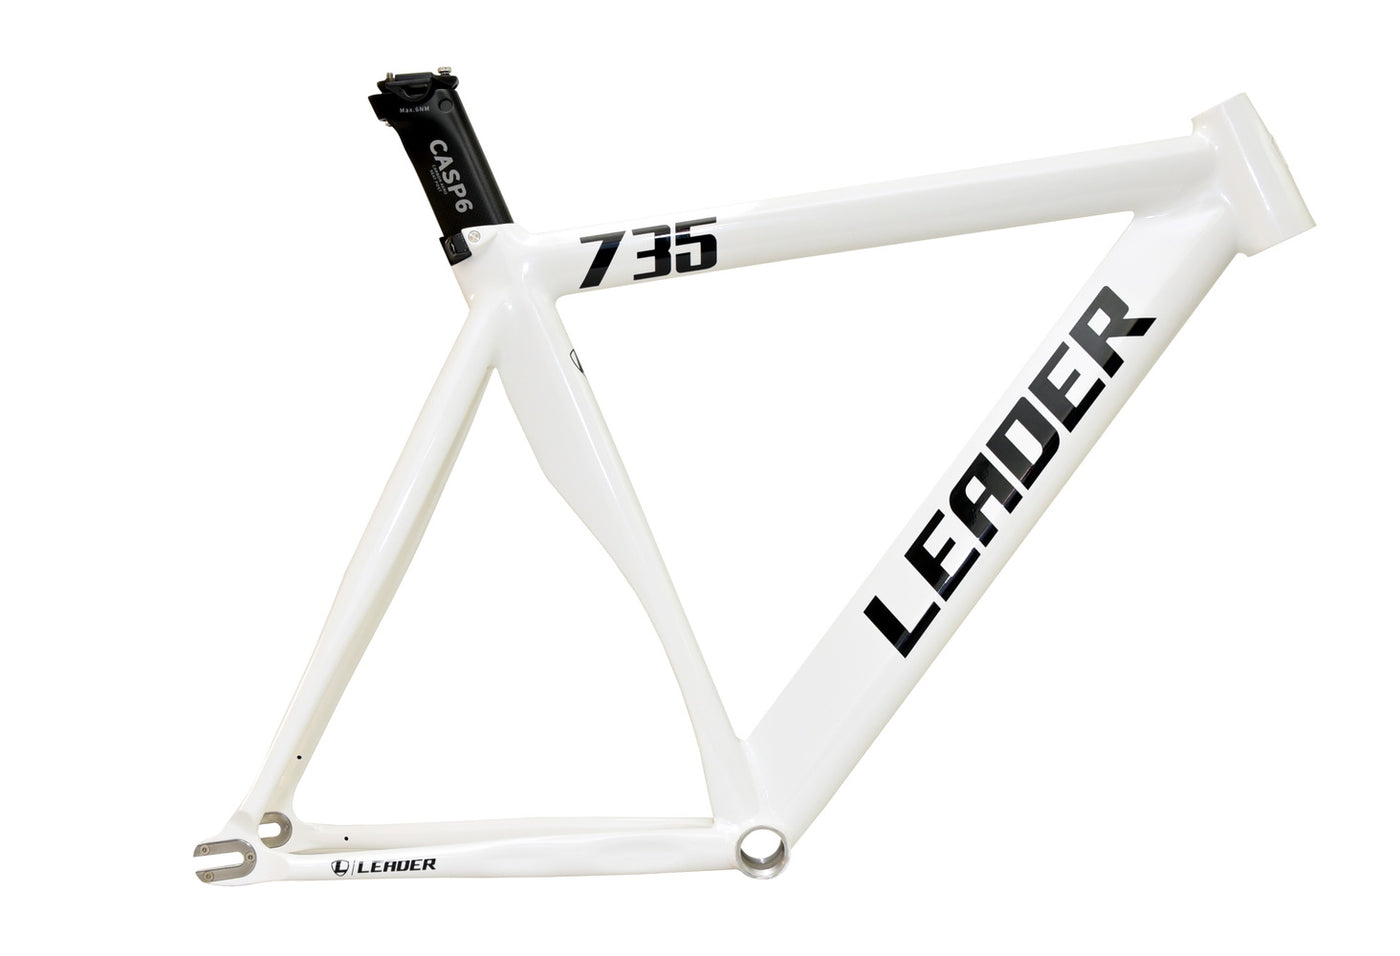 2019 LEADER 735  with Carbon Aero Seat Post - LEADER BIKES